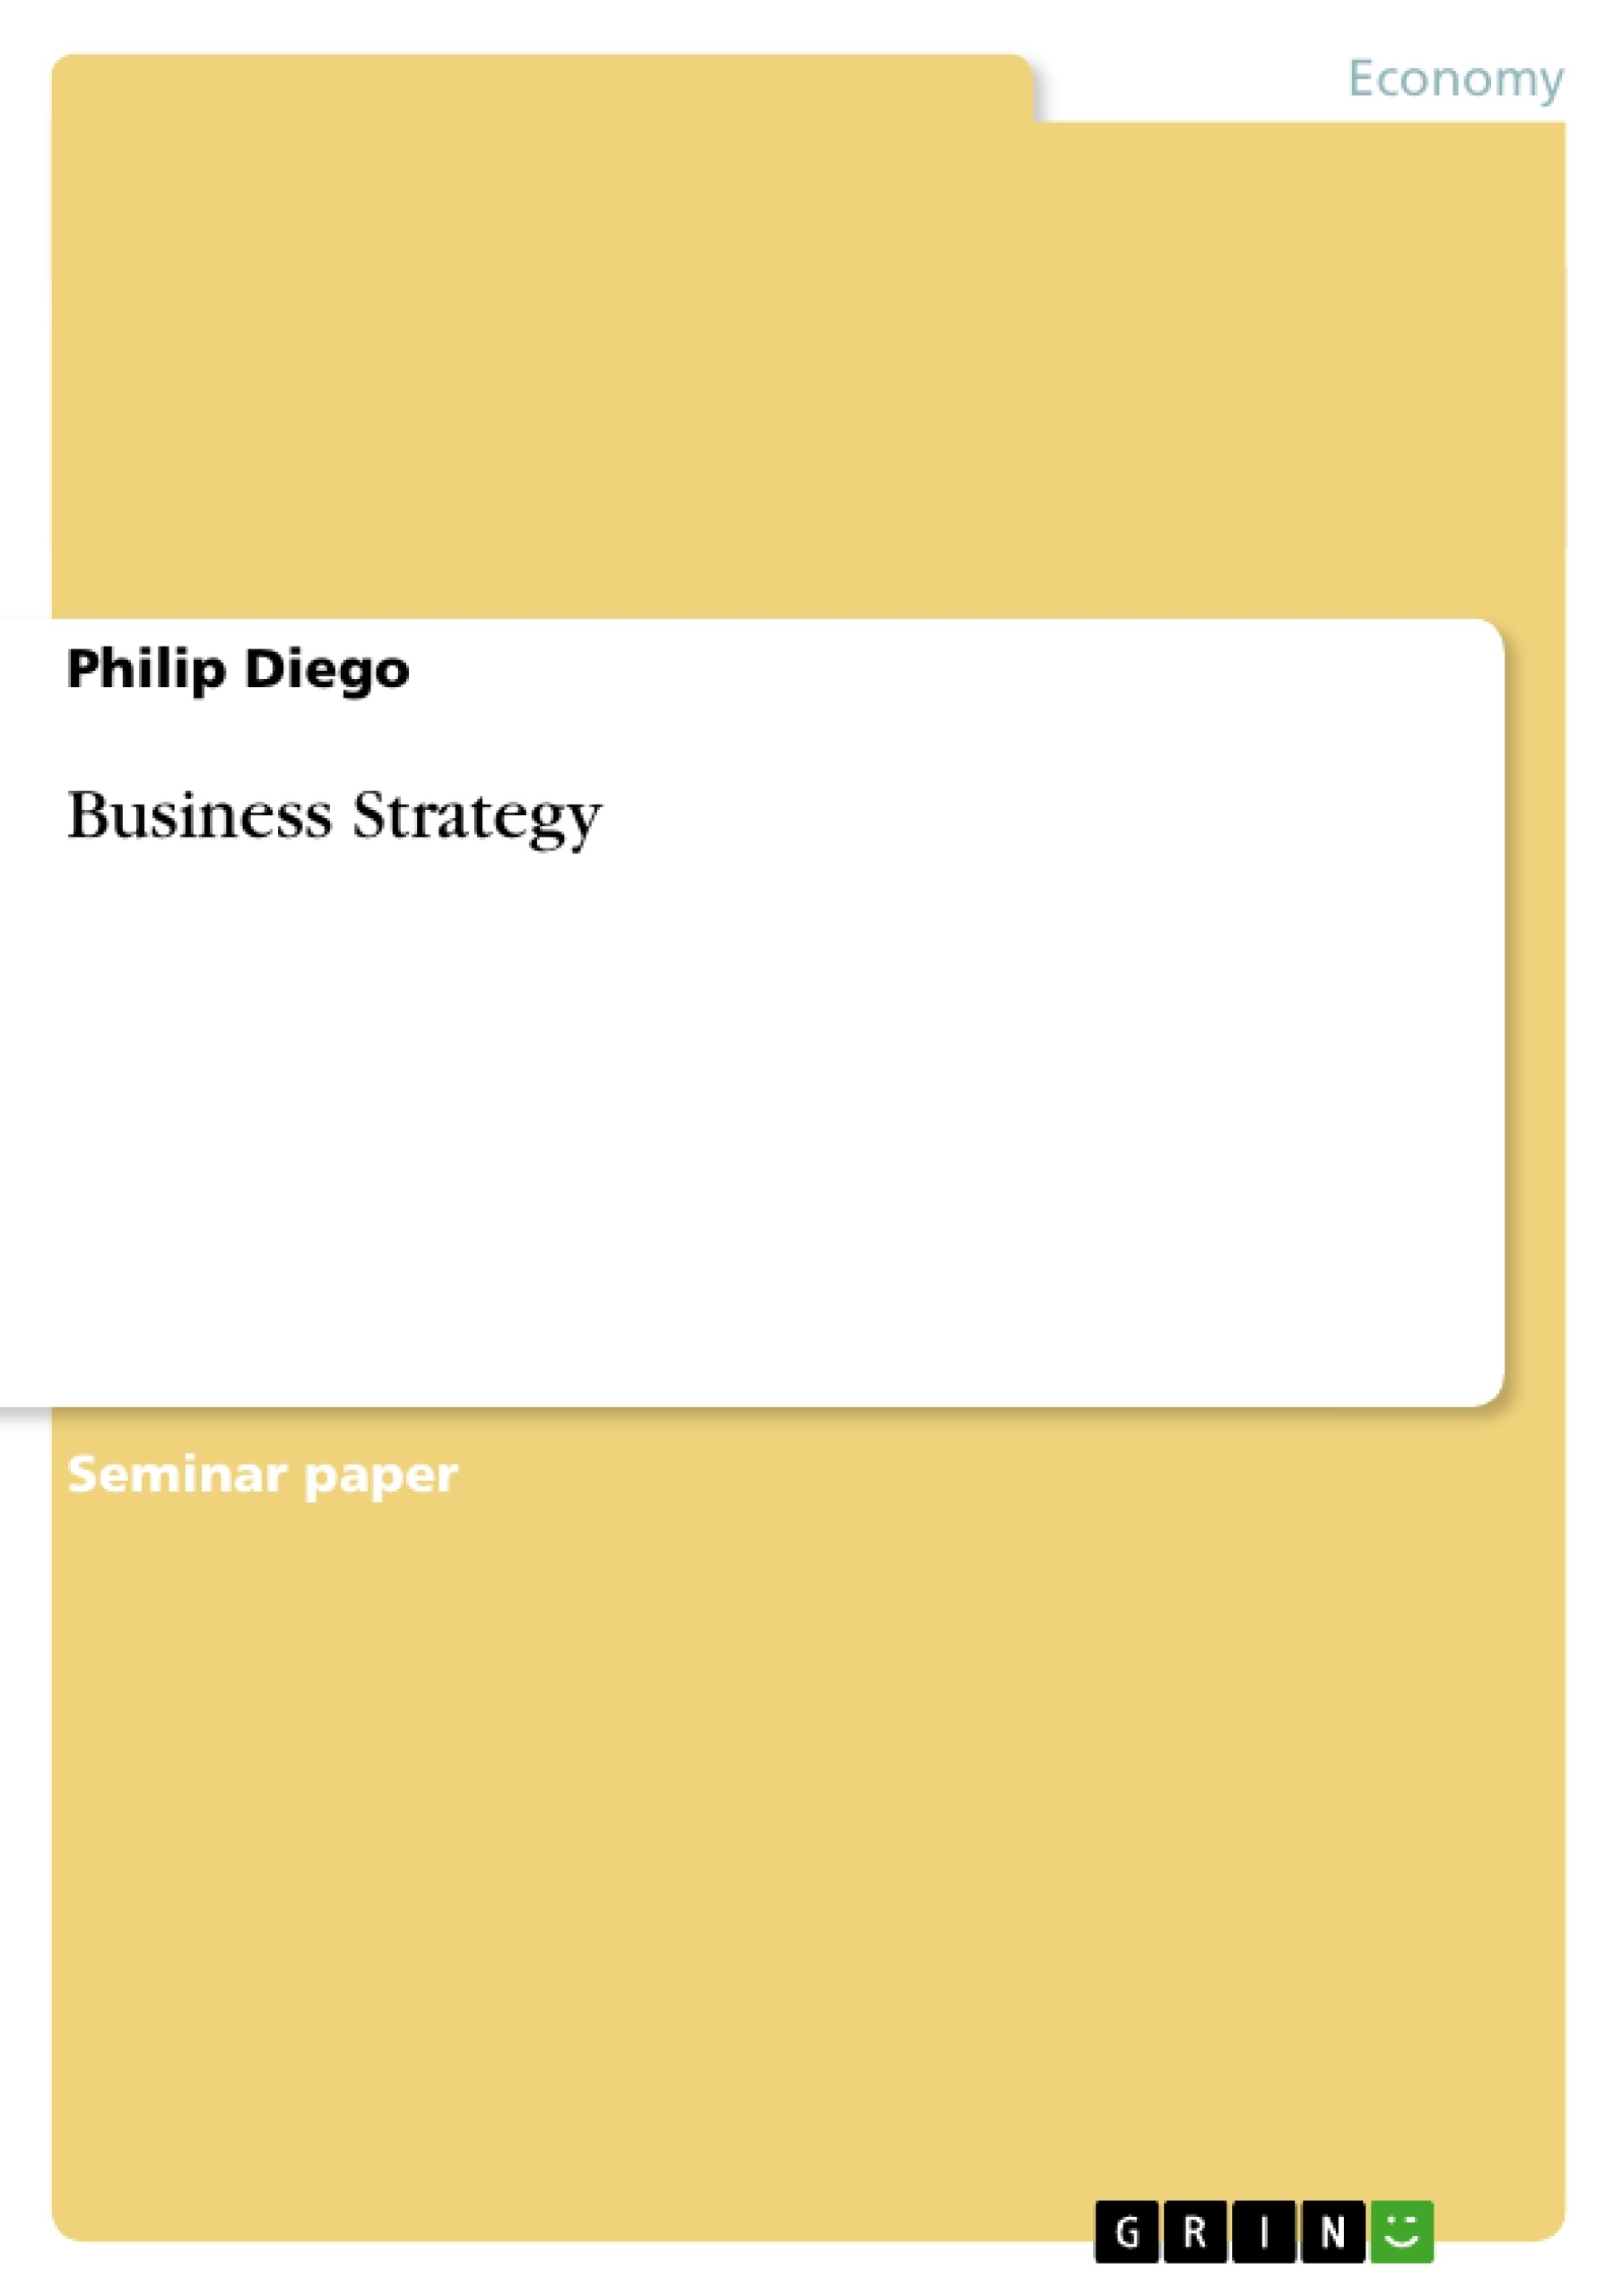 Title: Business Strategy